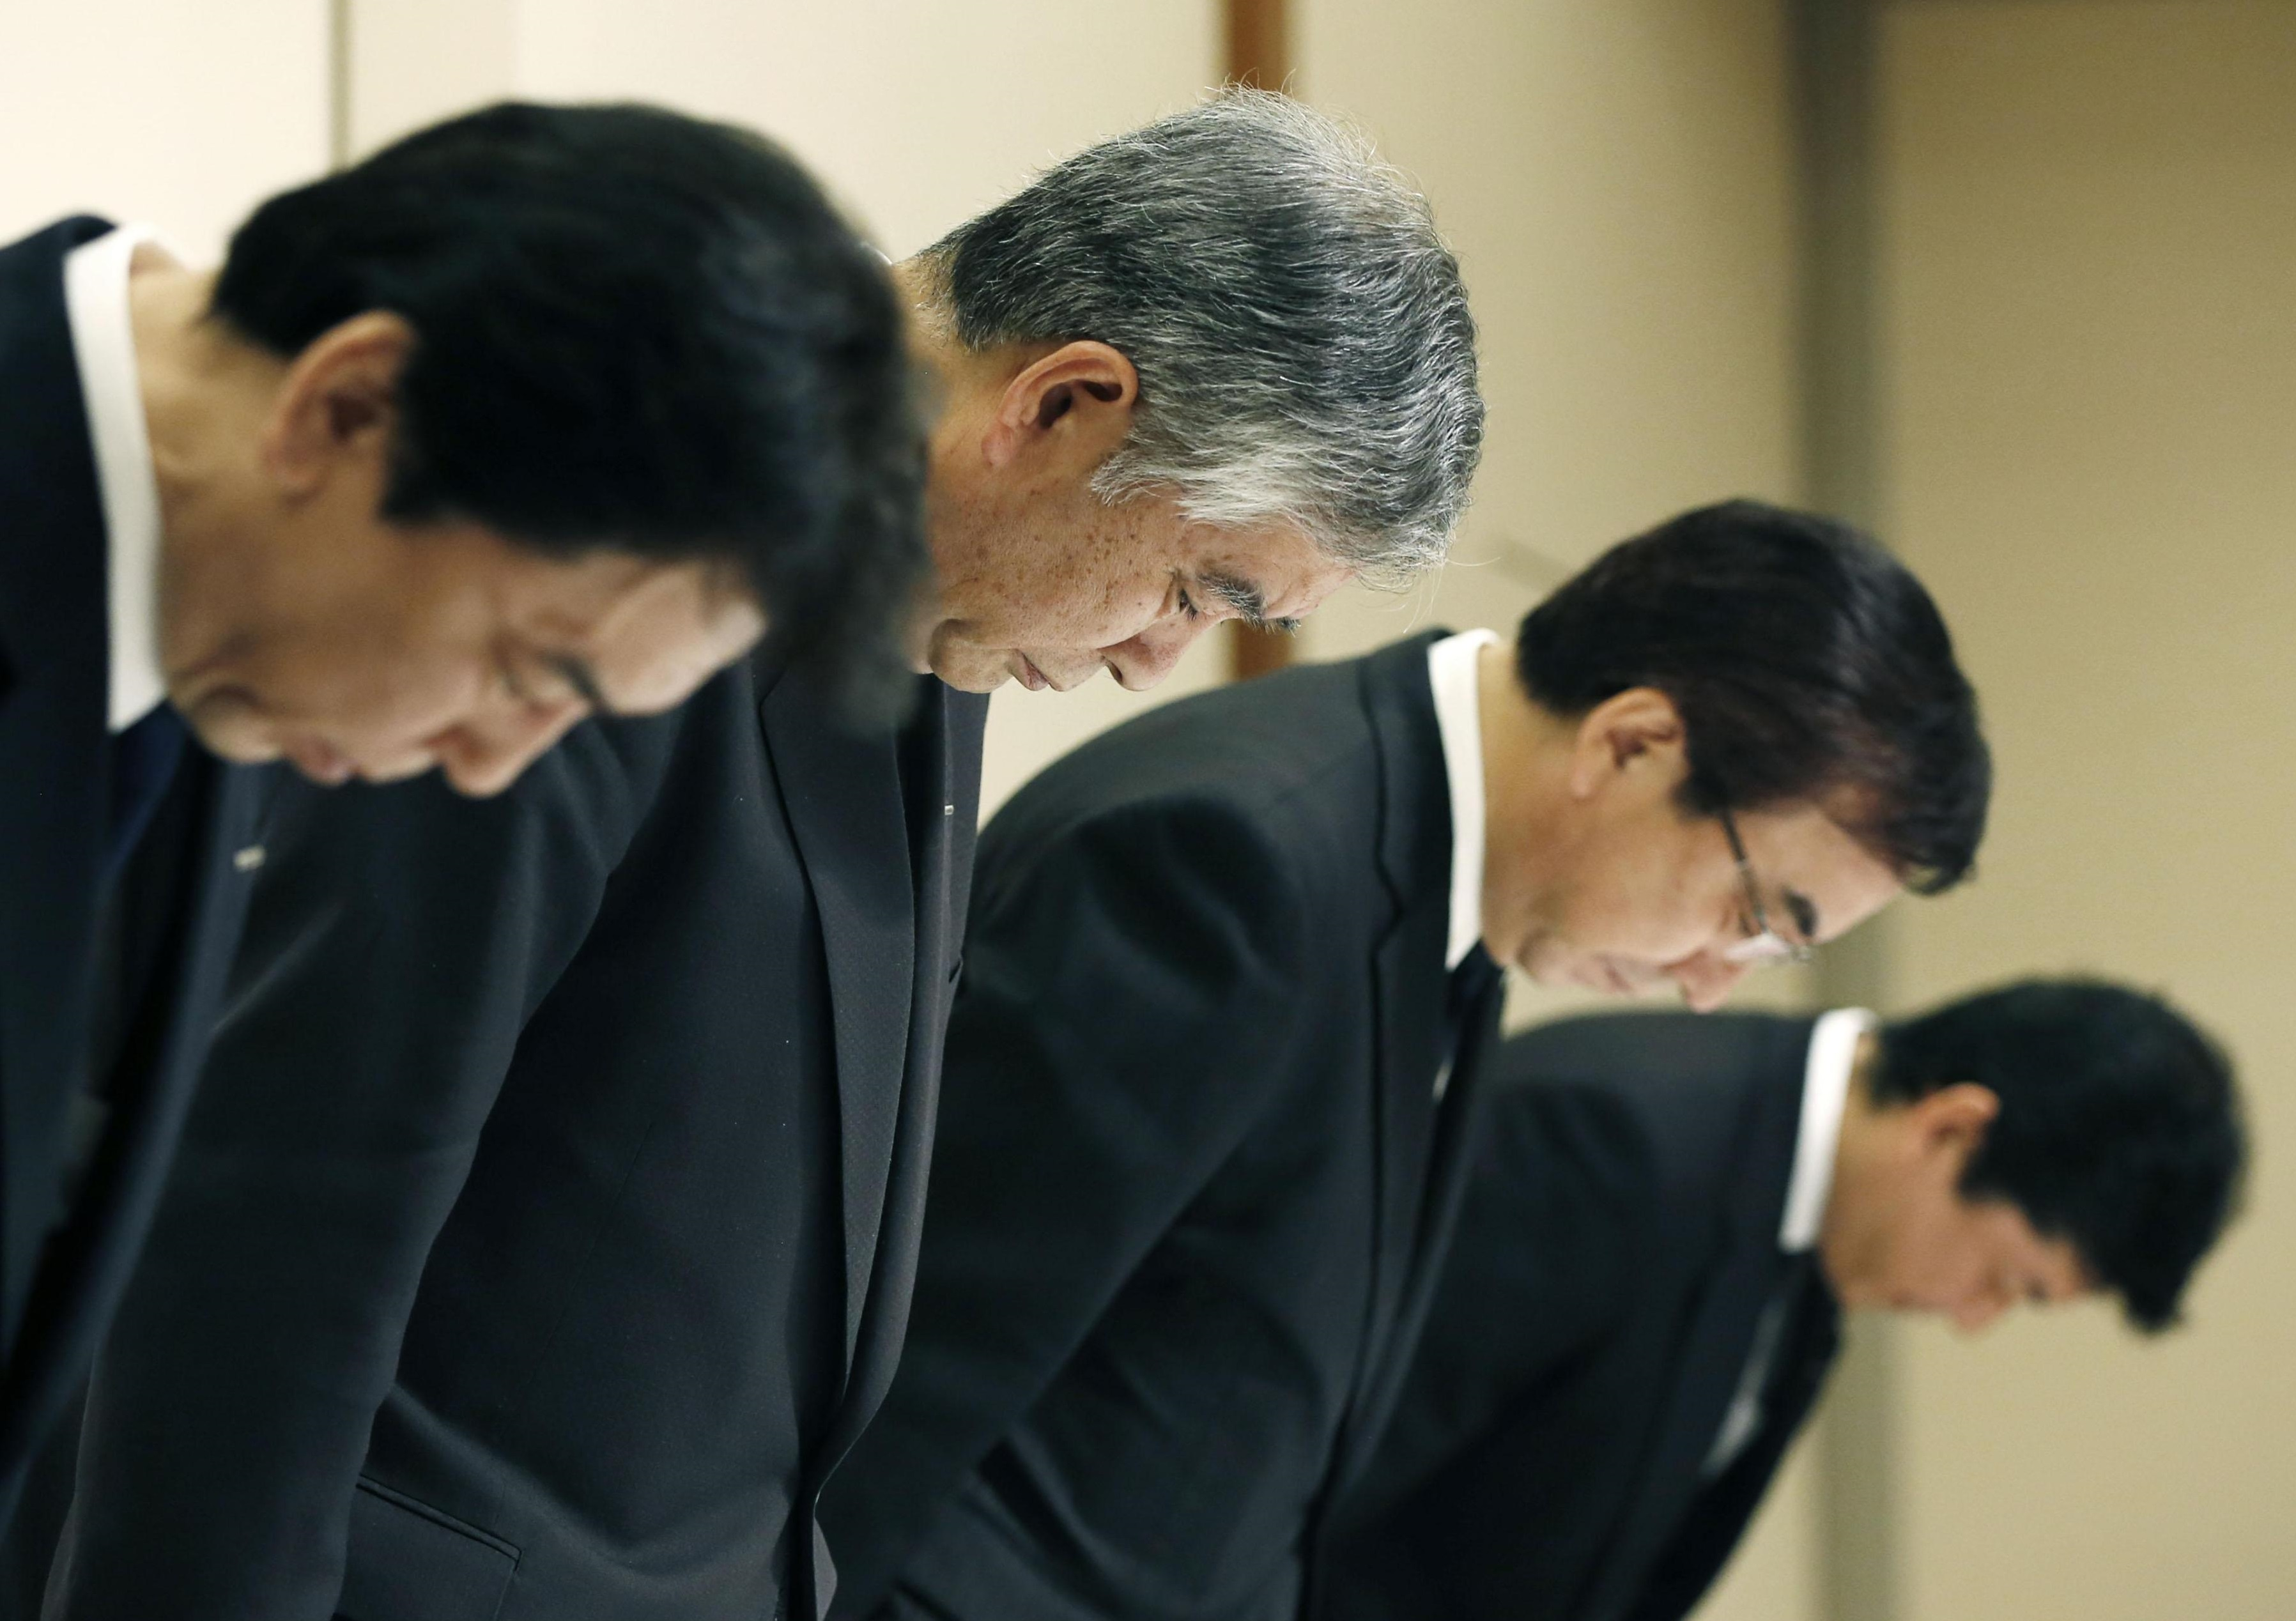 Asahi Kasei Corp. Vice President Masahito Hirai (second from left) and other executives bow in apology Monday during a news conference in Tokyo over the growing data falsification scandal involving the corporate group. | KYODO